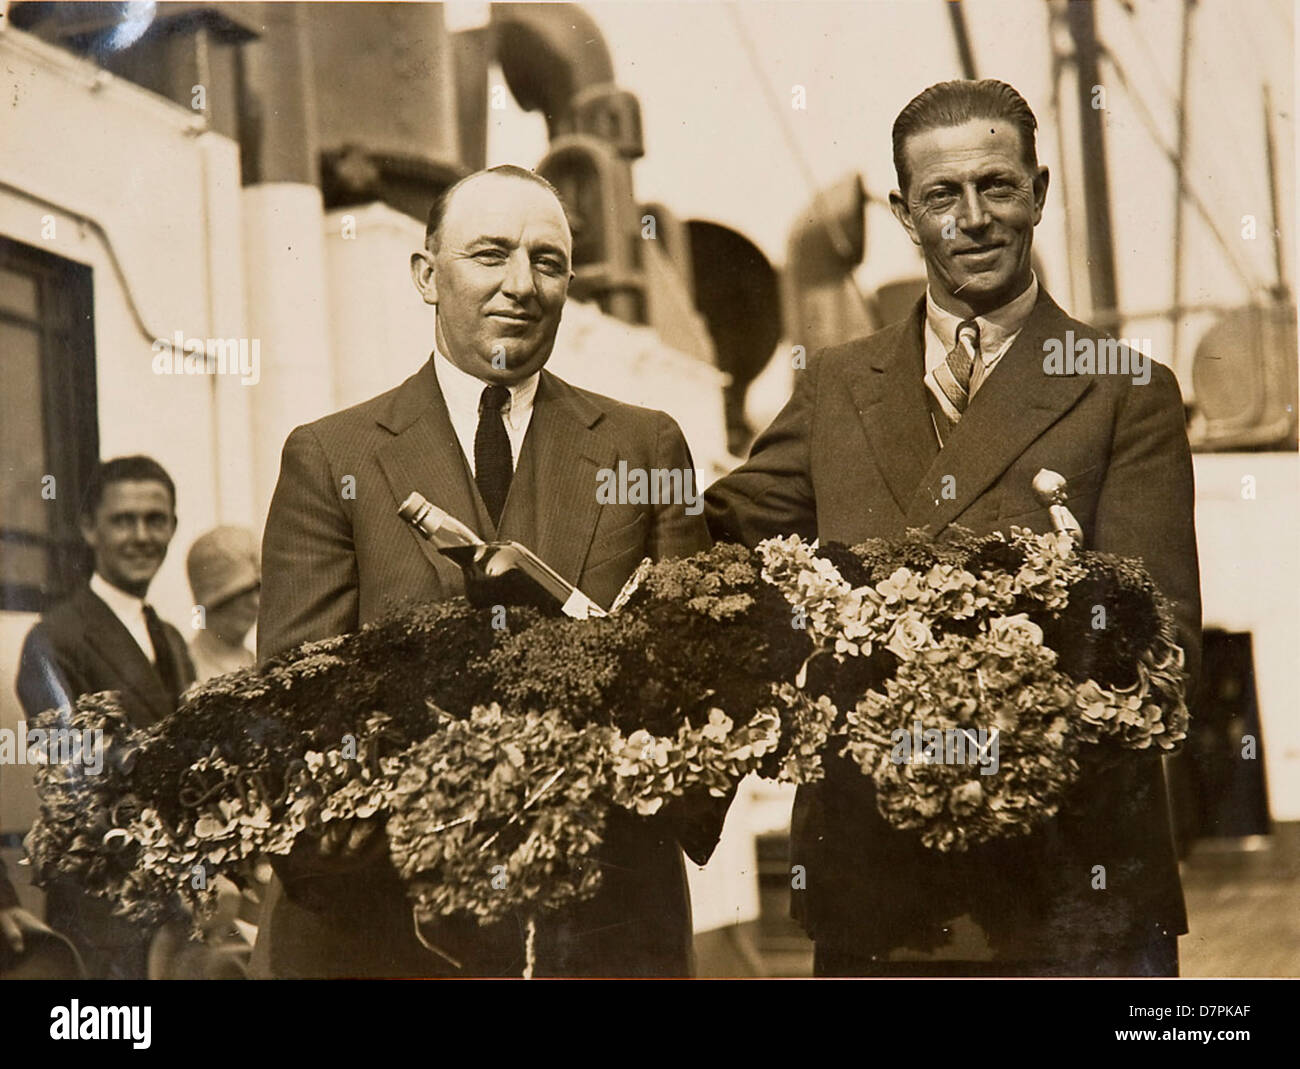 Norman 'Wizard' Smith and Don Harkness on board S.S. Maunganui - Stock Image